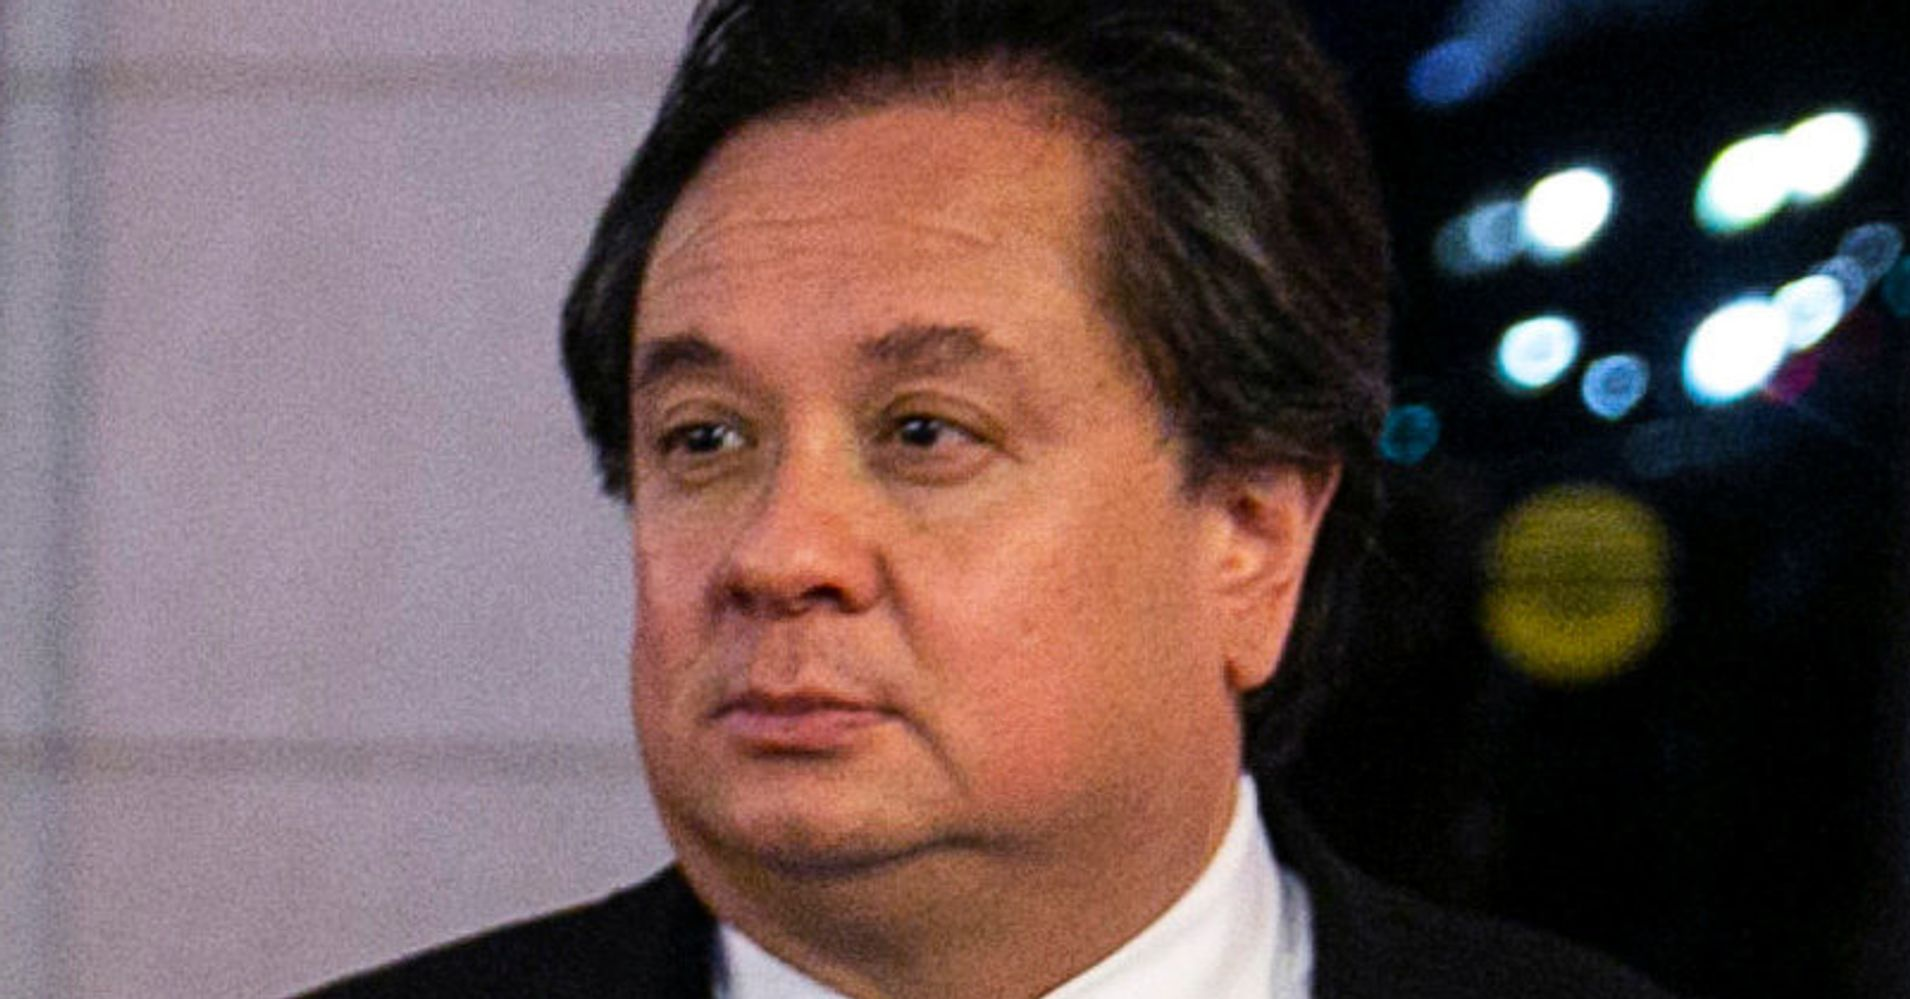 Westlake Legal Group 5d0182c02500004e12df8610 George Conway Says He's Changed His Mind About Trump: 'Racist To The Core'